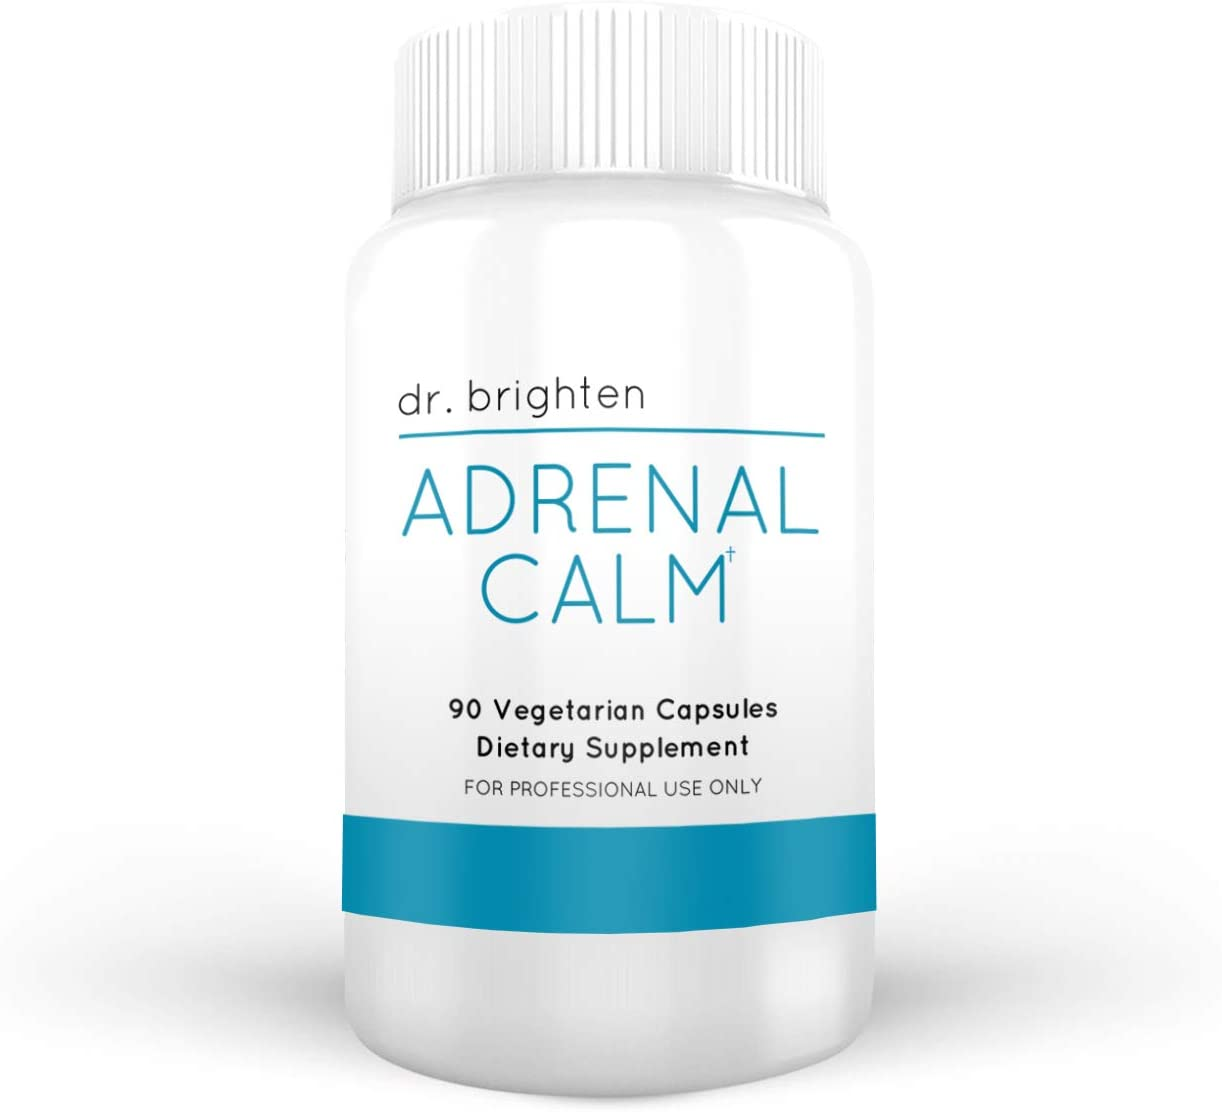 Dr. Brighten Adrenal Calm - Dietary Supplement Drops Stress Hormones Supports Restful Sleep and Cortisol Balance with Ashwagandha Adaptogenic Herb